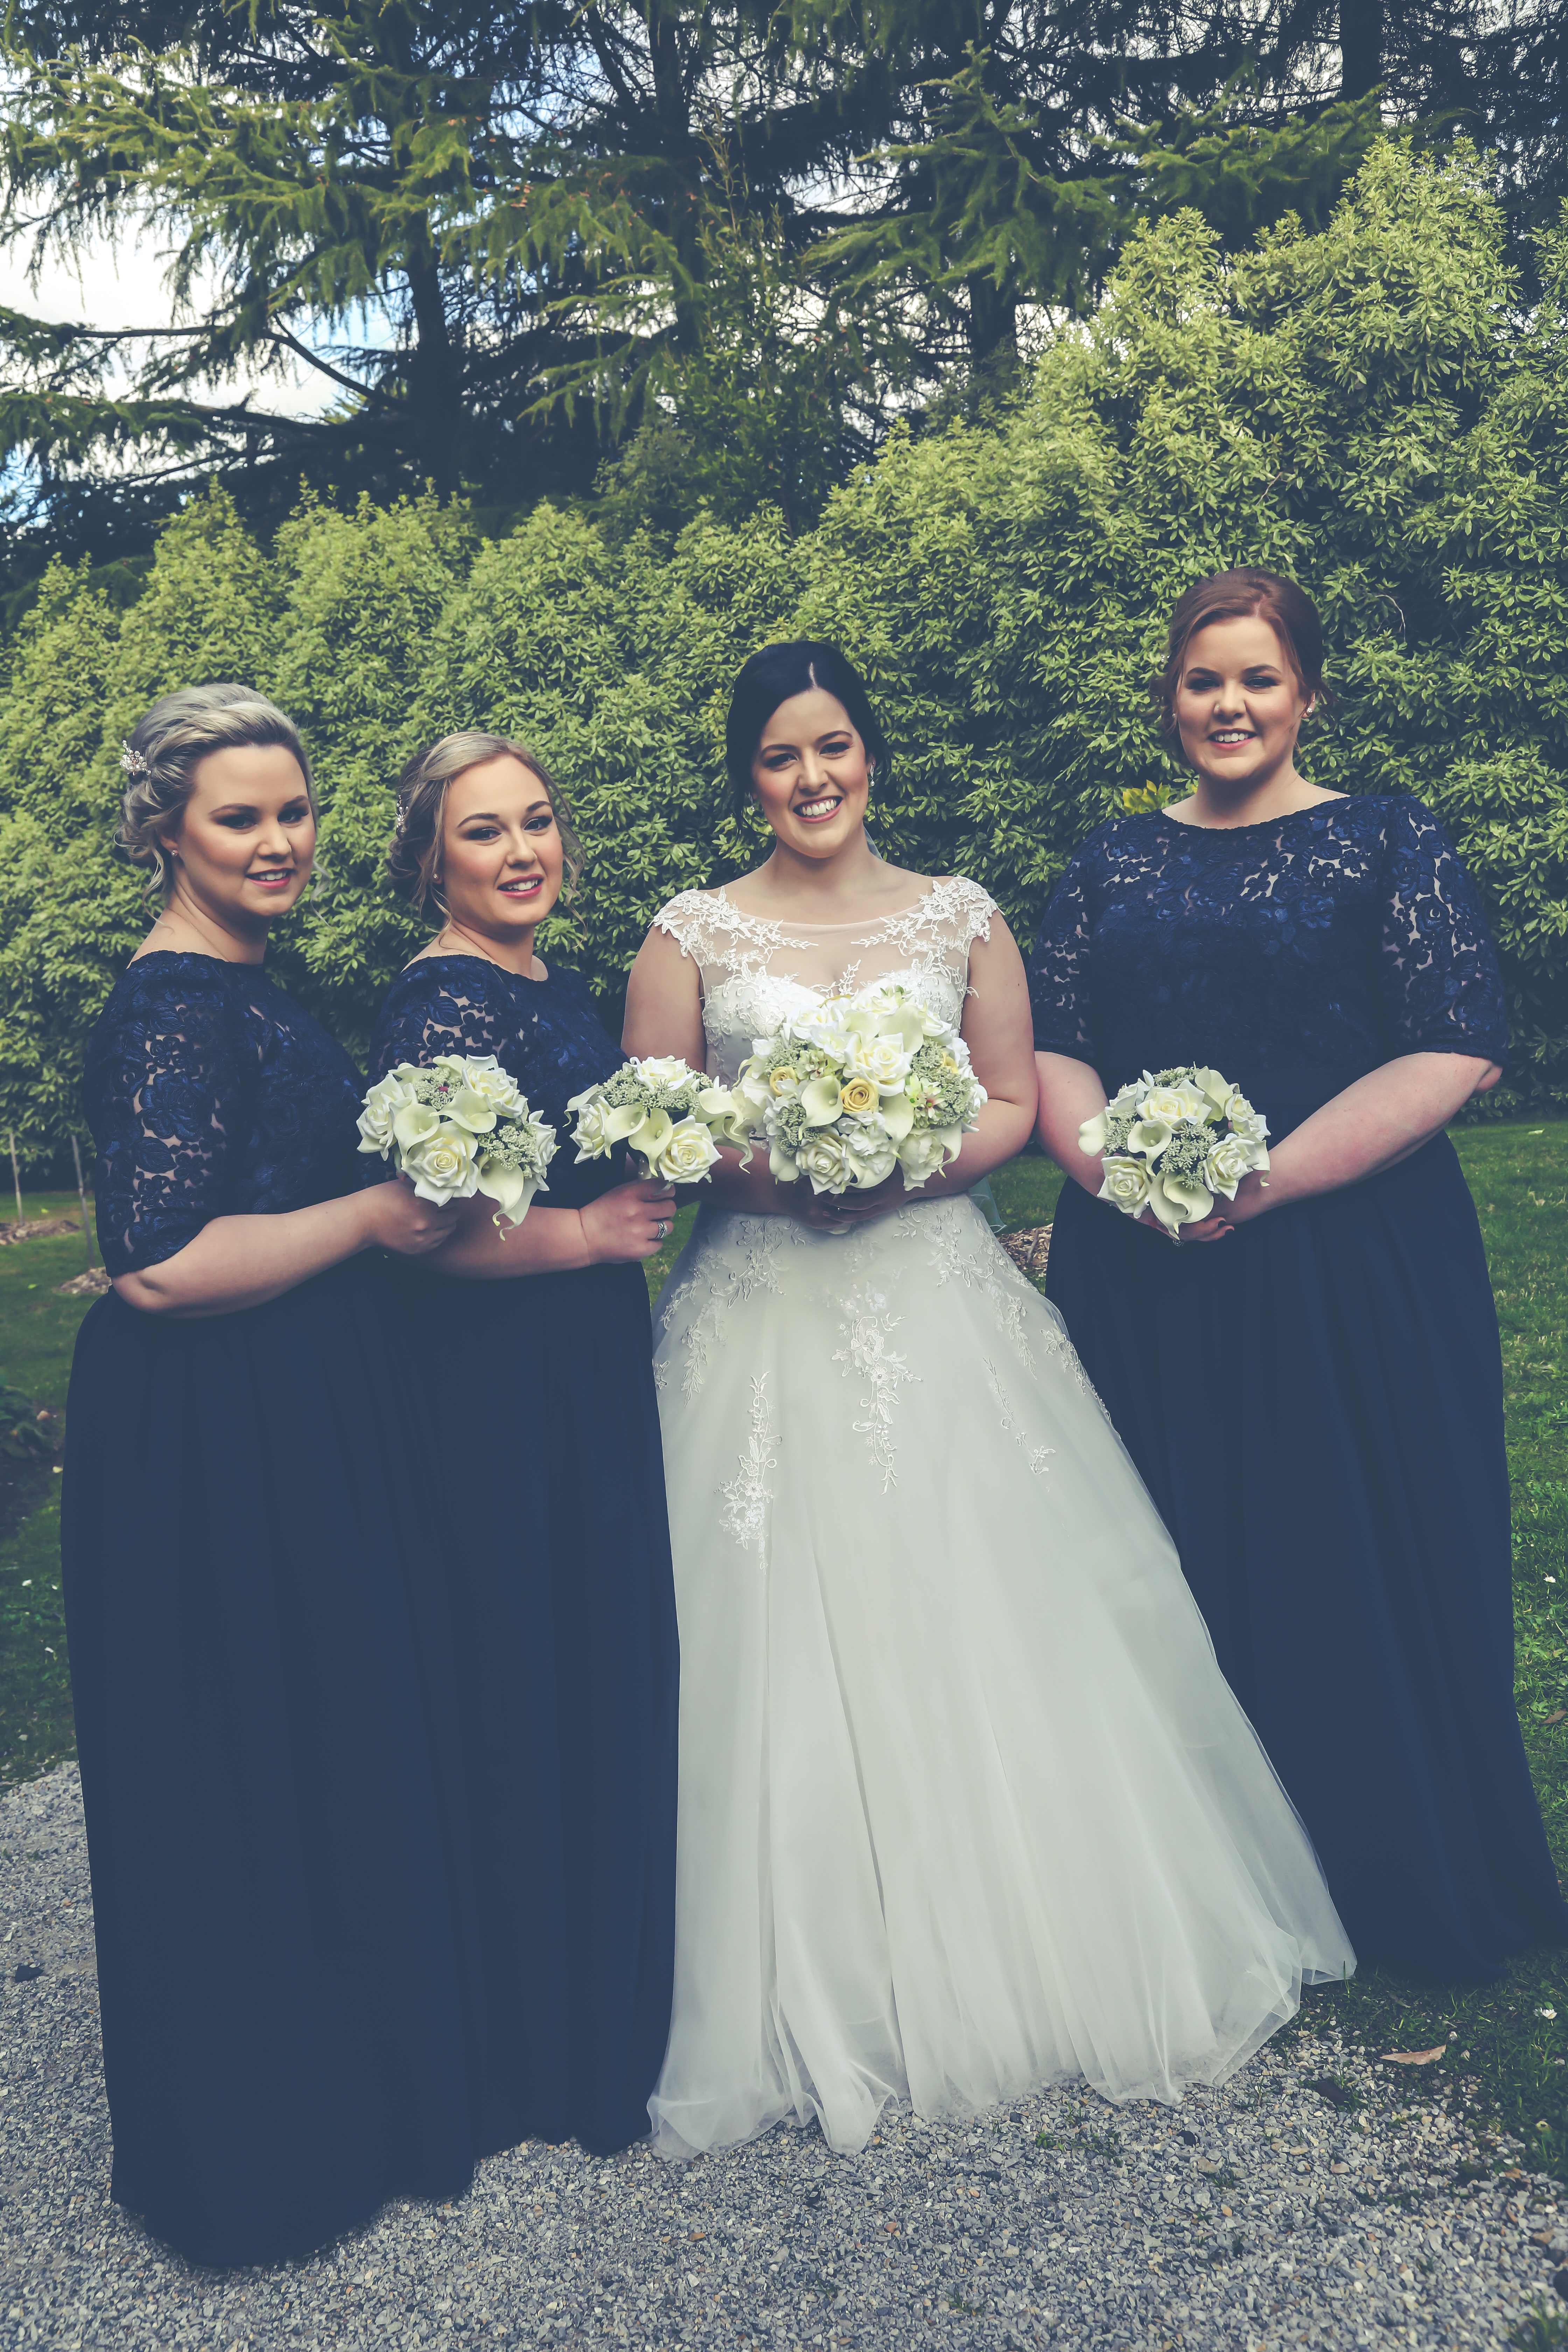 Bridal party alterations